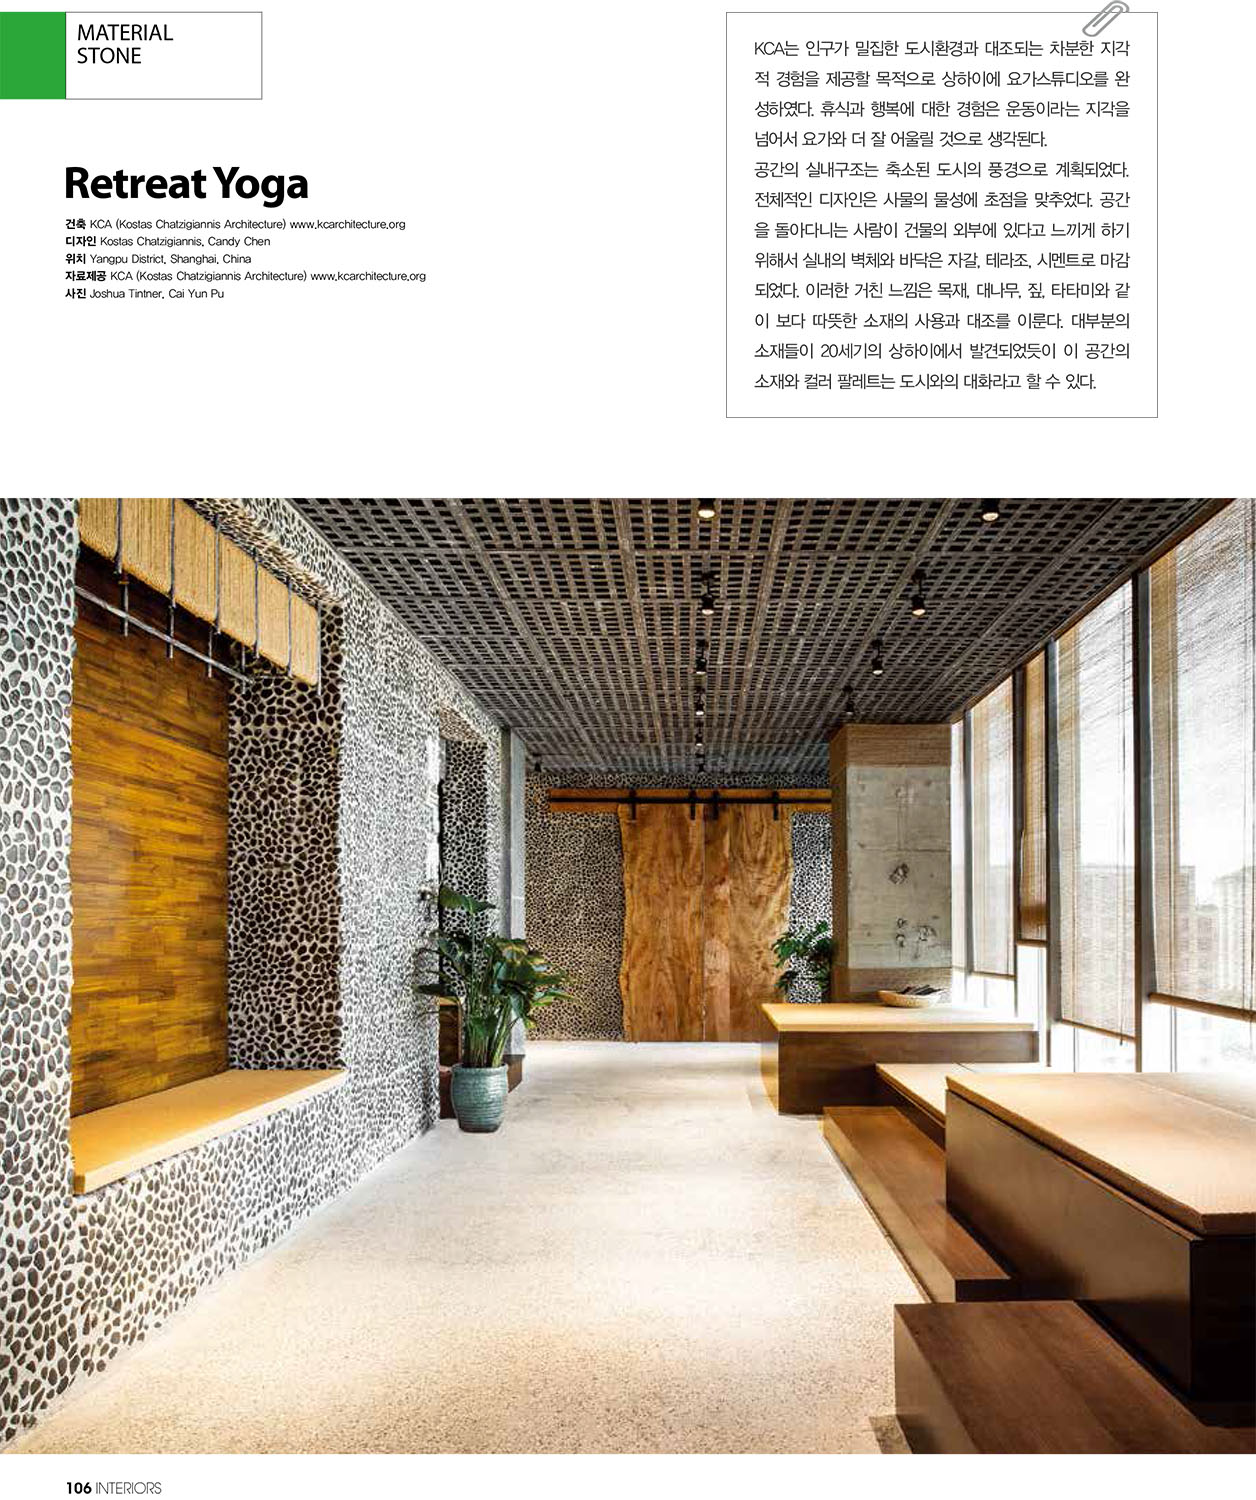 Interiors issue 375-1.jpg